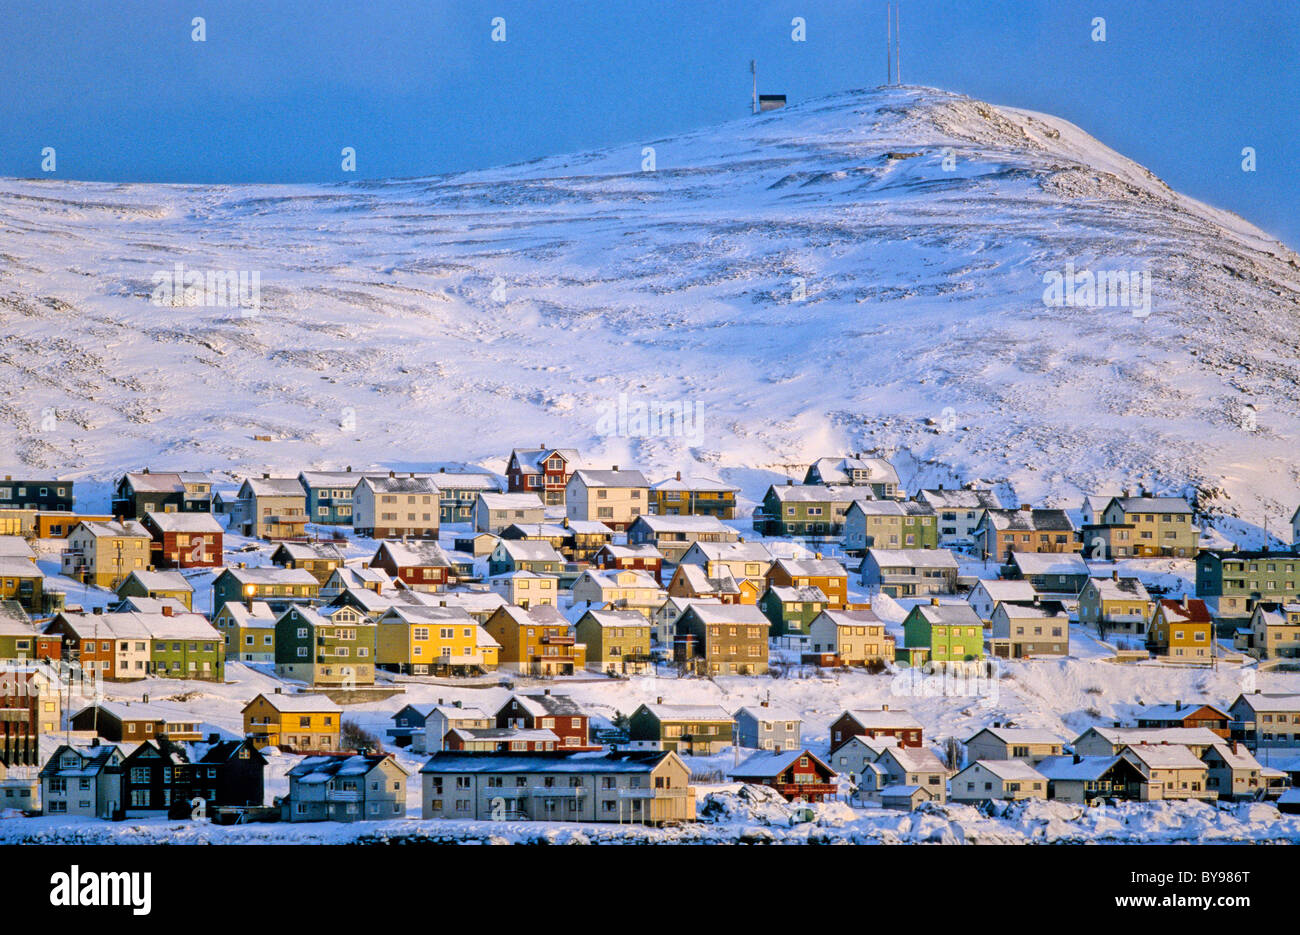 North Cape, Norway, main village Honningsvag, winter. - Stock Image